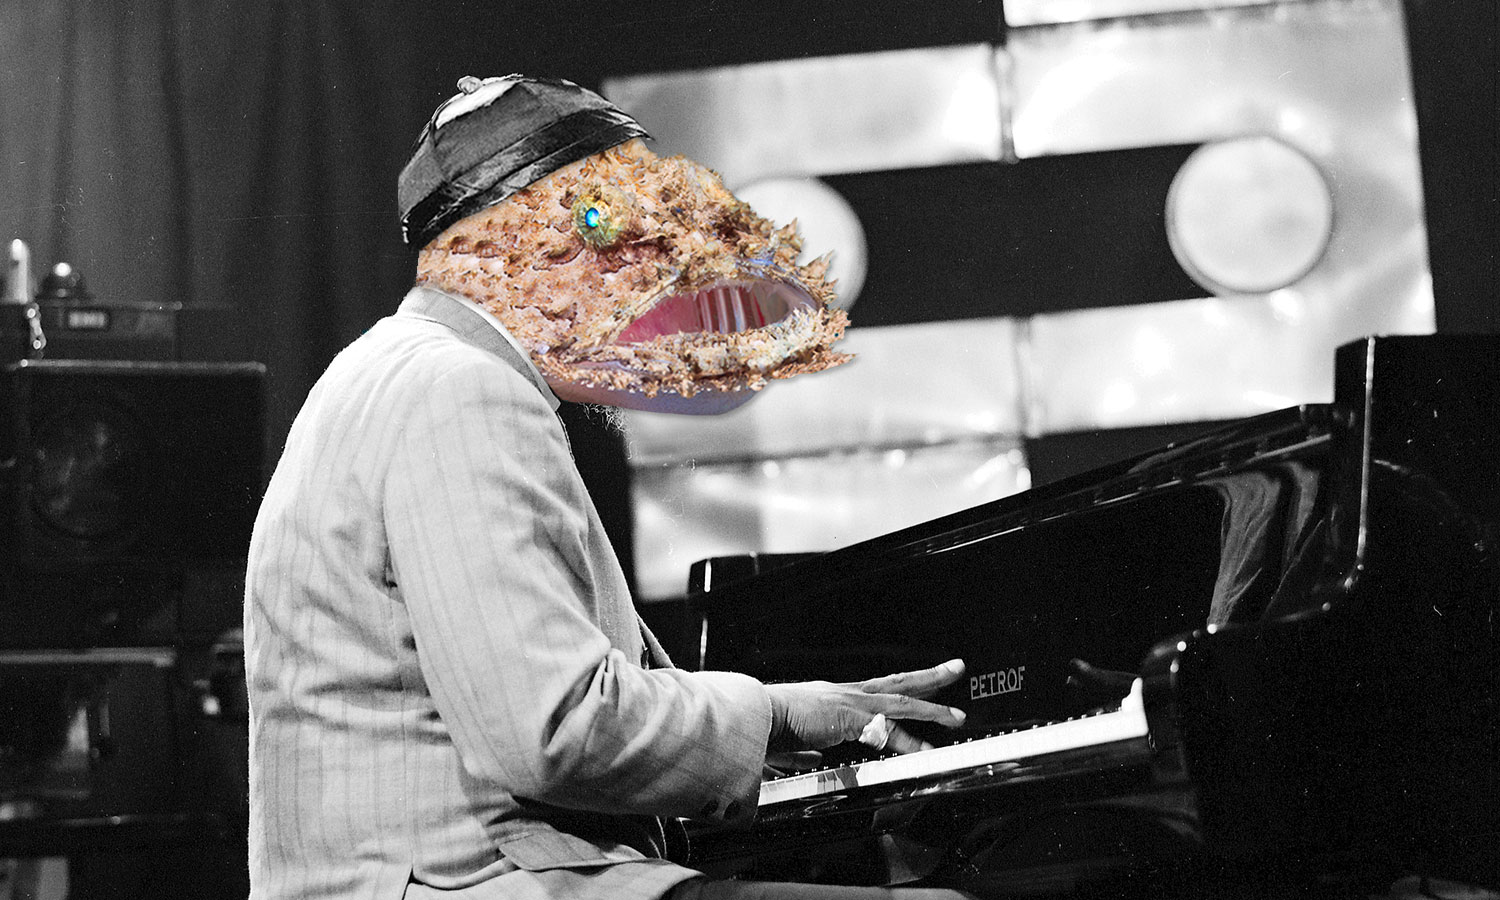 Archival image of jazz musician Thelonious Monk, with his face replaced by a monkfish.